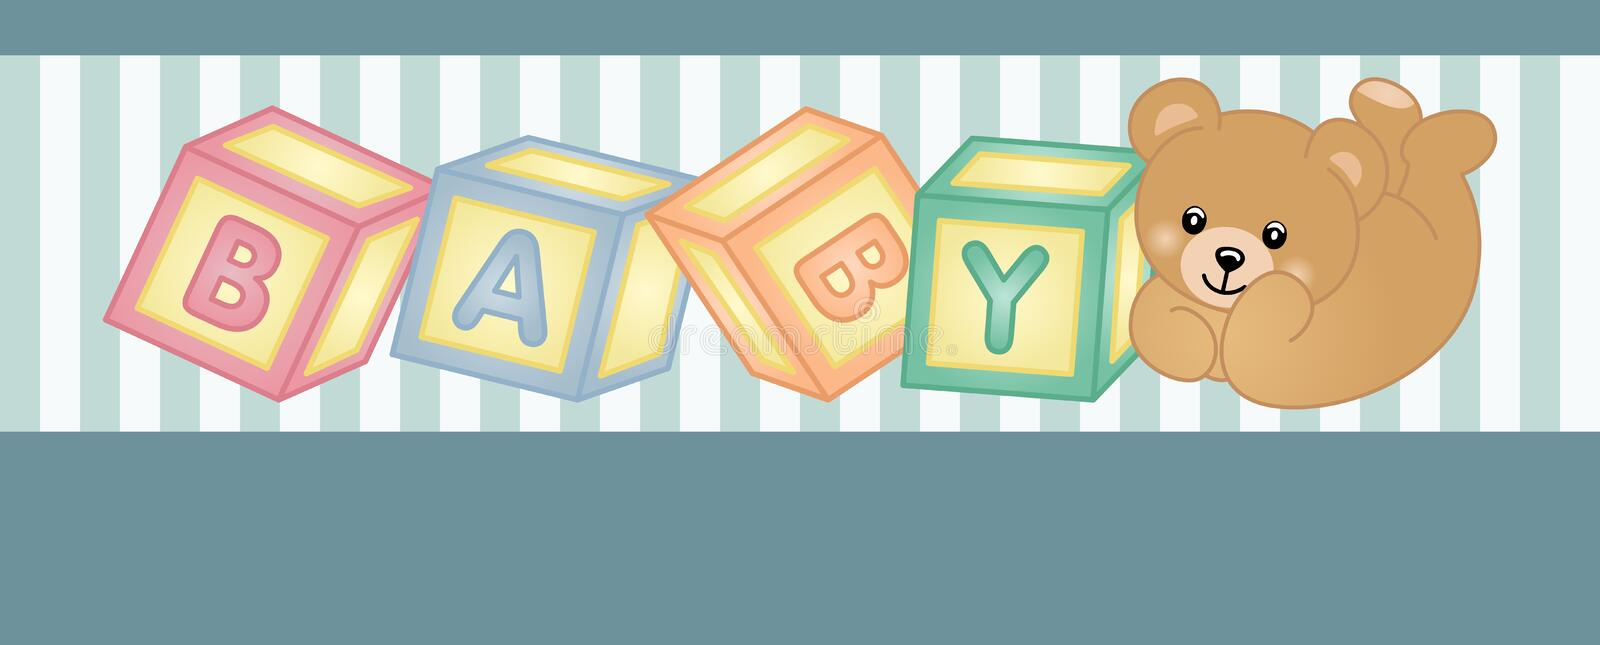 Baby Banner Stock Illustrations 86 670 Baby Banner Stock Illustrations Vectors Clipart Dreamstime